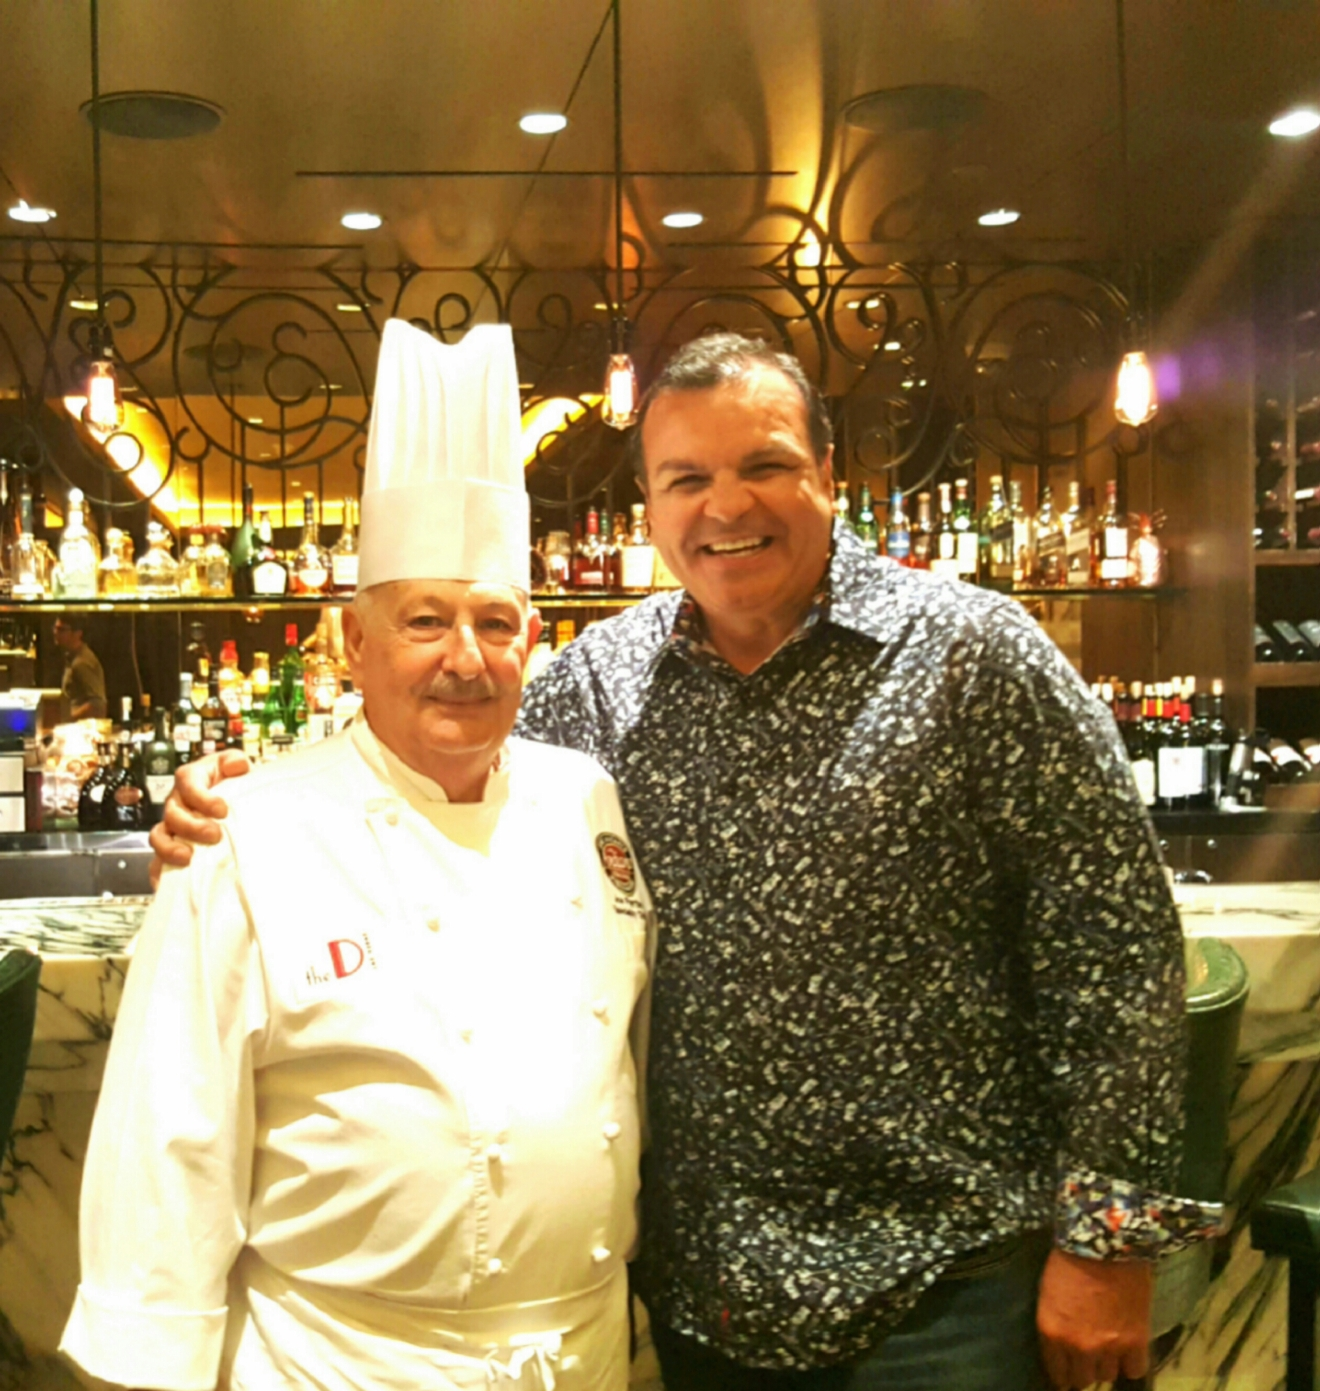 With Chef at Andiamo Steakhouse inside The D Casino Hotel (Photo courtesy Ray O'Canto)